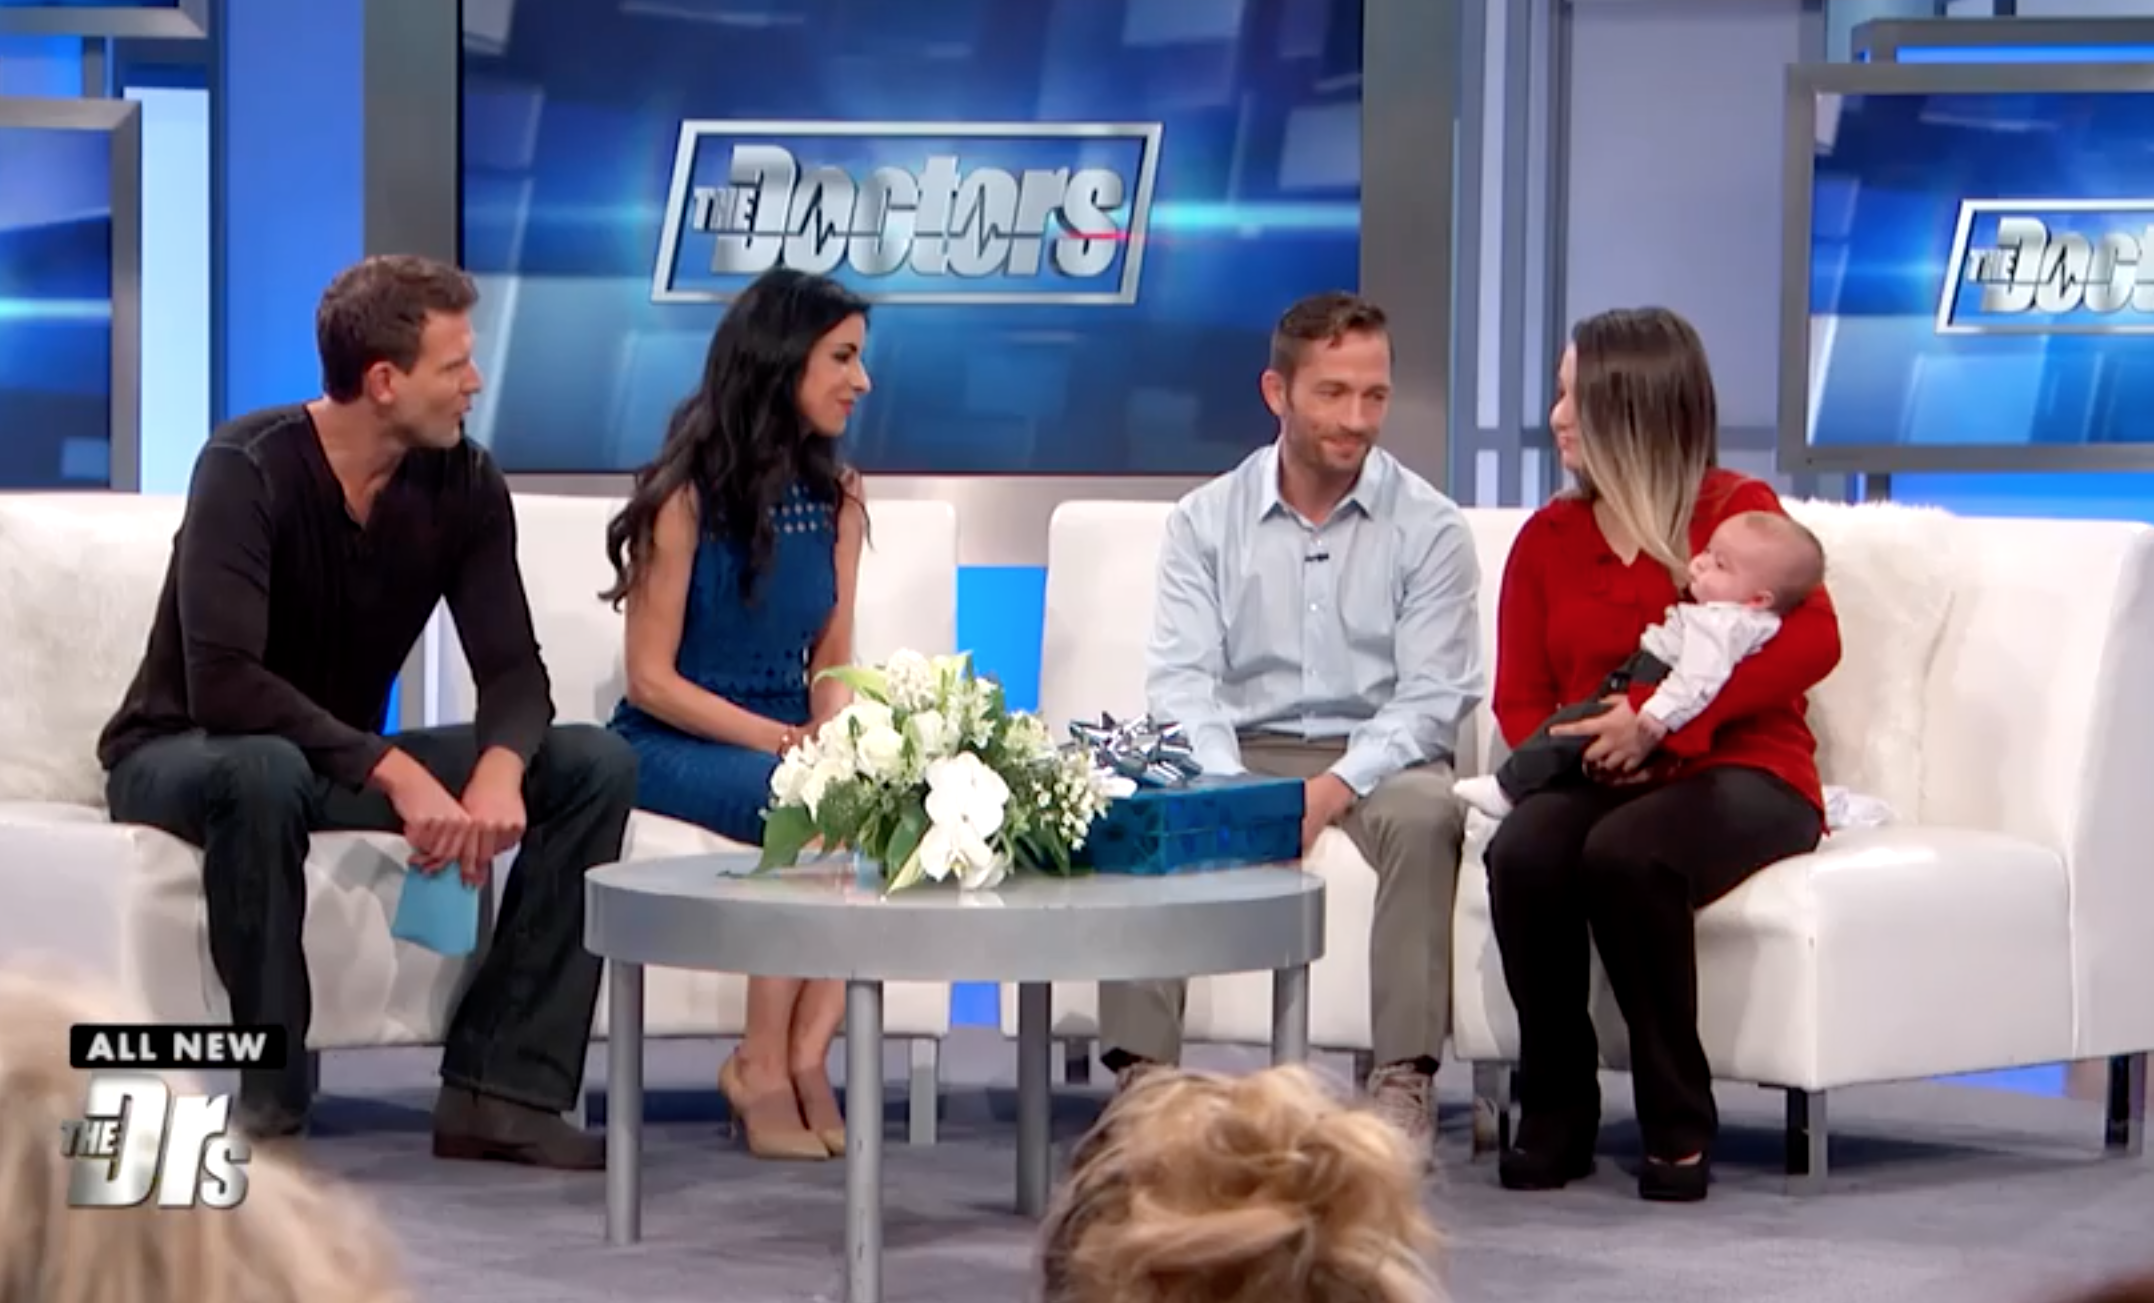 THE DOCTORS: HOW MOURNING PARENTS WENT FROM HEARTBREAK TO HEALING - MMA fighter Marcus Kowal joins The Doctors with his wife Mishel to share about their life after the tragic loss of their son and to introduce the newest addition to their family...